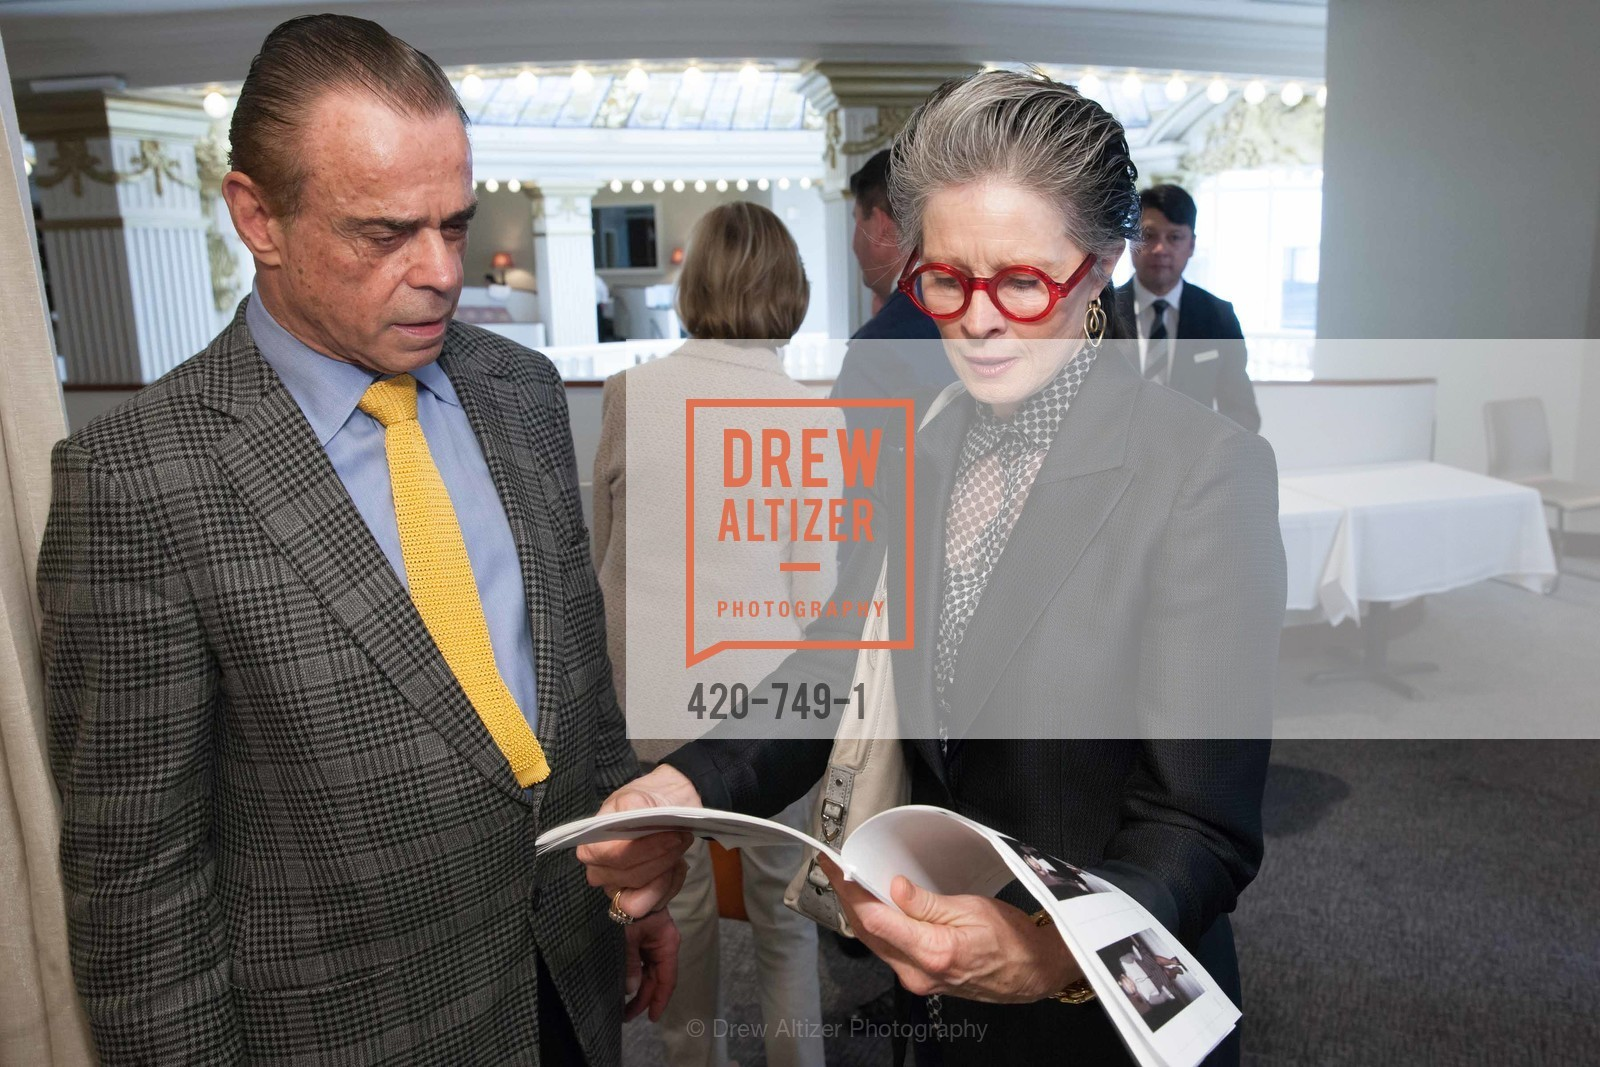 Boaz Mazor, Meriwether McGattigan, PETER COPPING Meets and Greets OSCAR DELA RENTA Clients and Associates at NEIMAN MARCUS, US, May 22nd, 2015,Drew Altizer, Drew Altizer Photography, full-service agency, private events, San Francisco photographer, photographer california